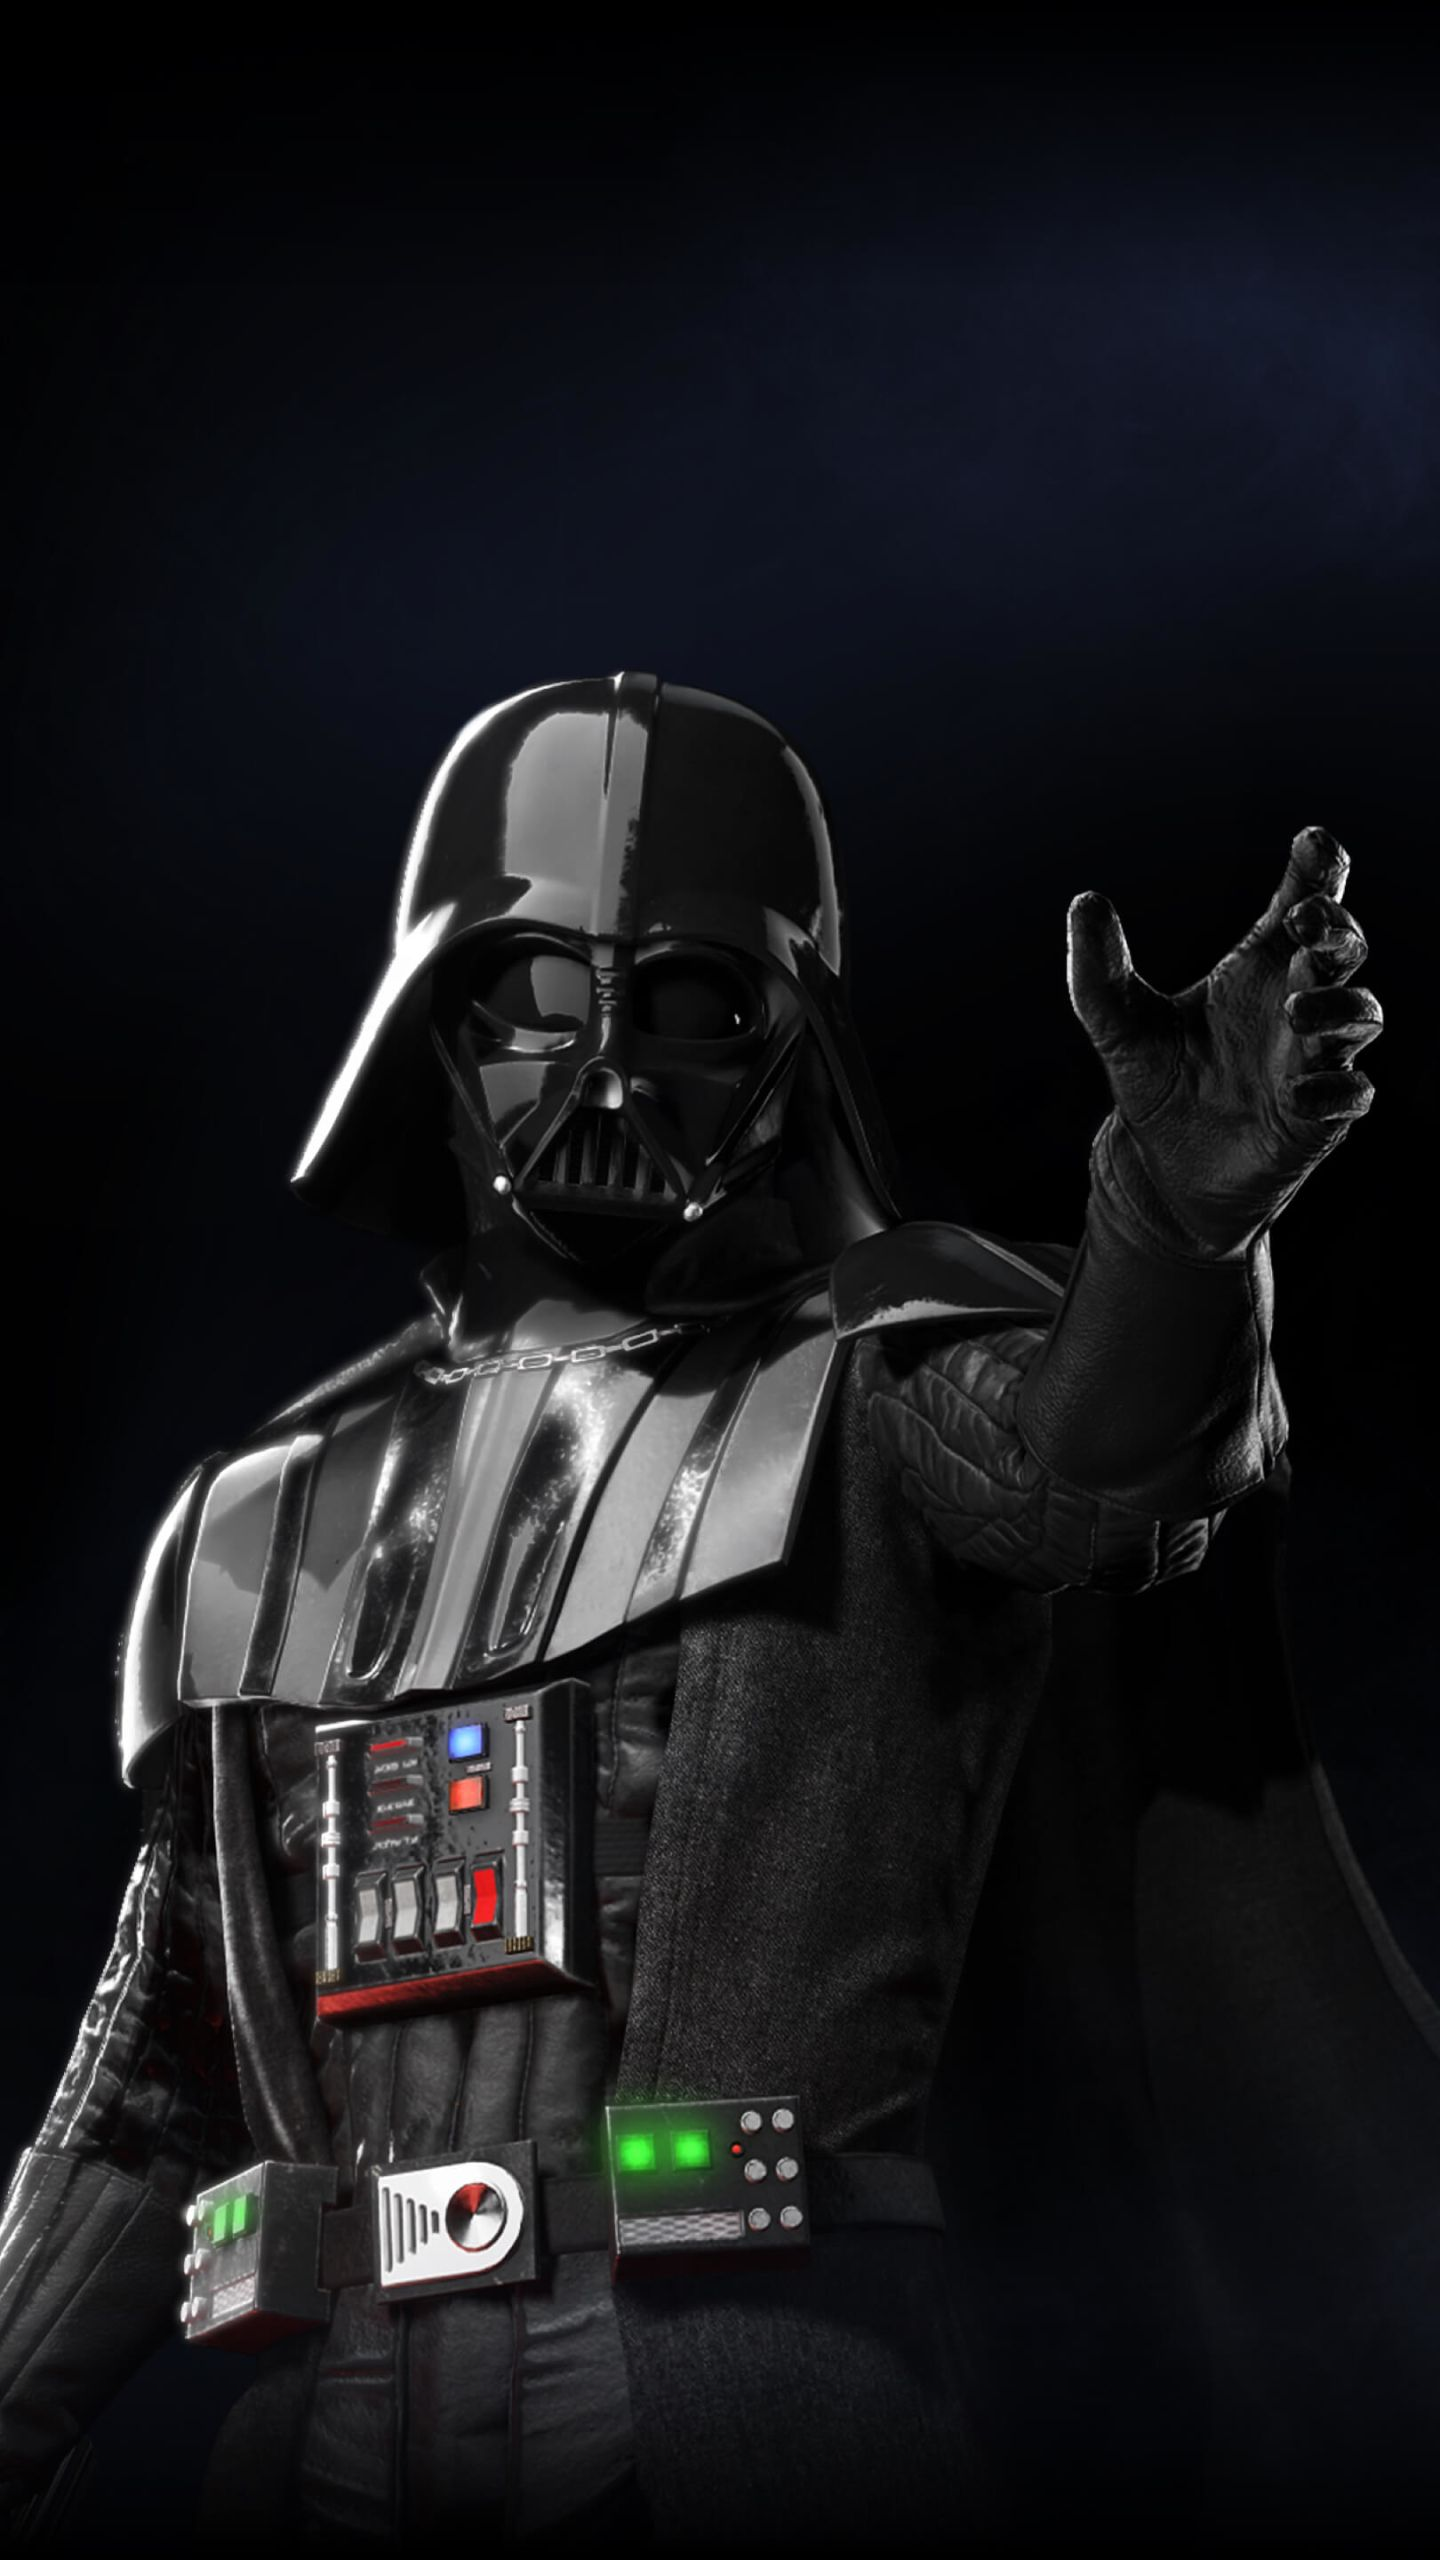 Darth Vader Iphone Wallpaper Hd Posted By Zoey Simpson